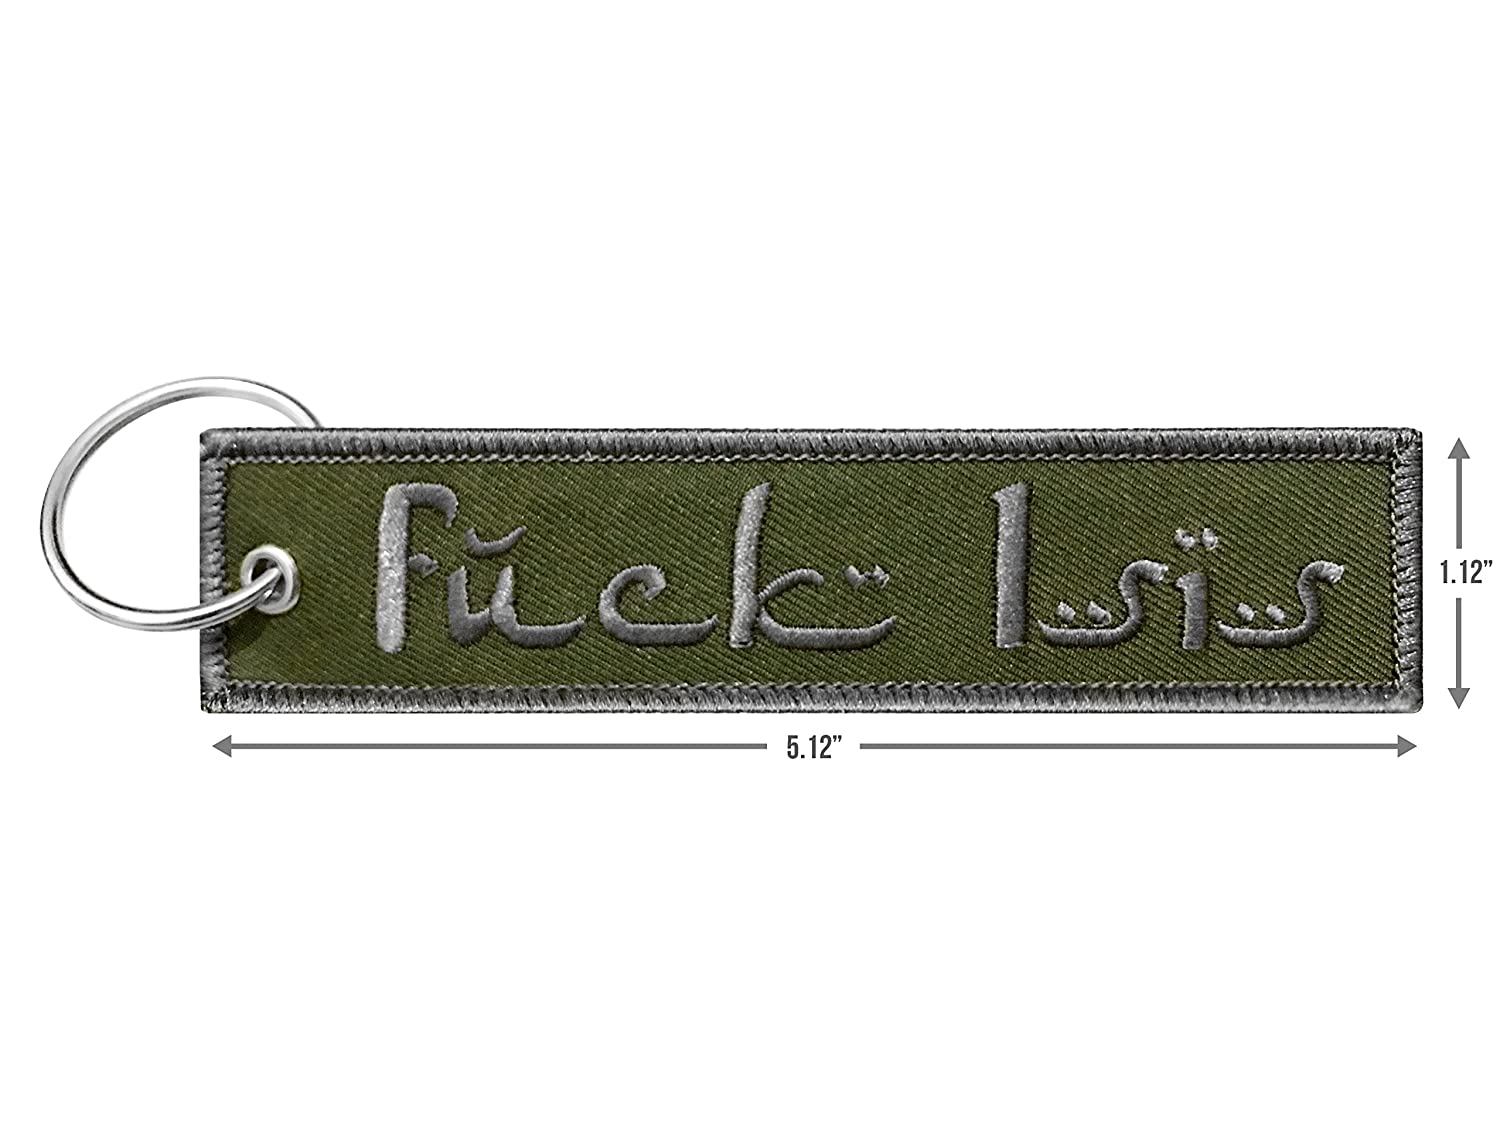 Amazon.com: Military FCK Isis Keychain Tag with Key Ring, EDC for ...